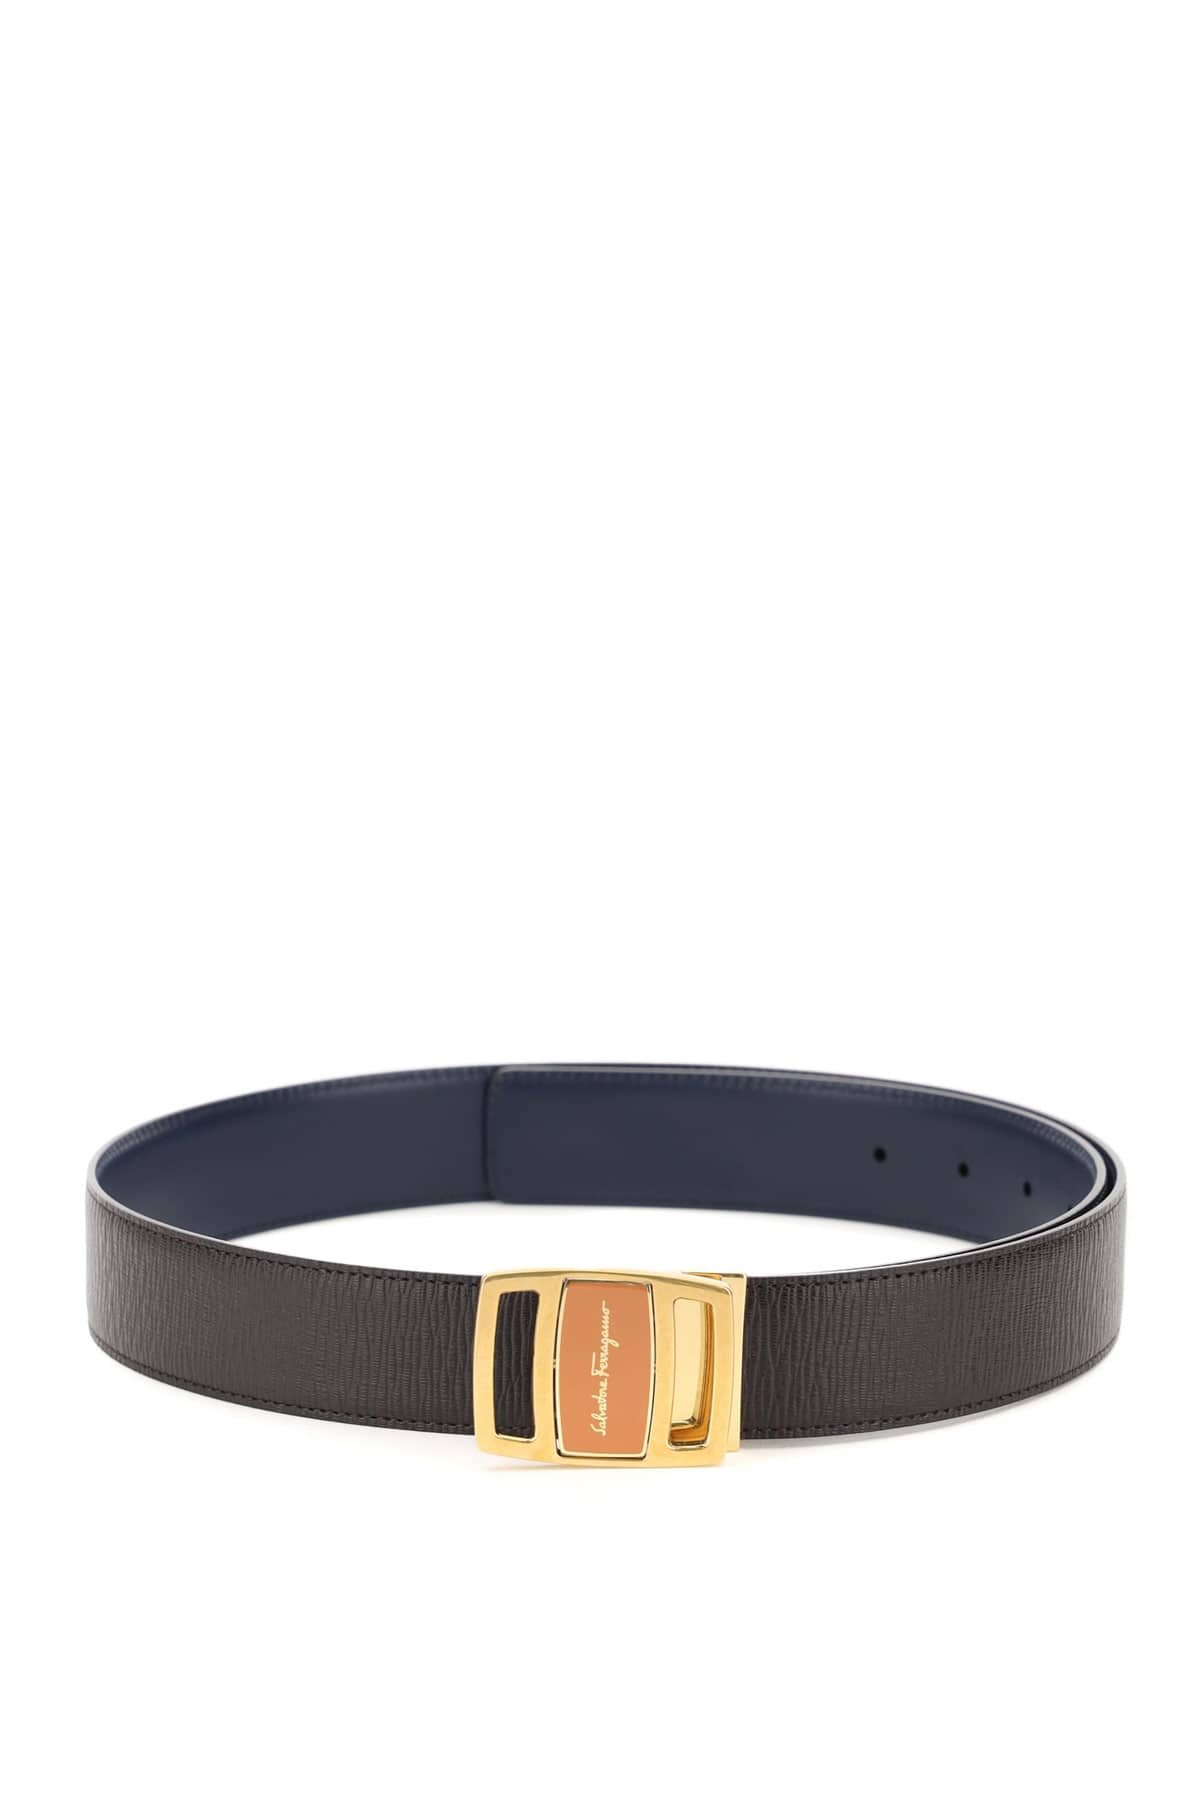 SALVATORE FERRAGAMO REVERSIBLE LEATHER BELT WITH DOUBLE-FACE BUCKLE 110 Brown, Blue Leather